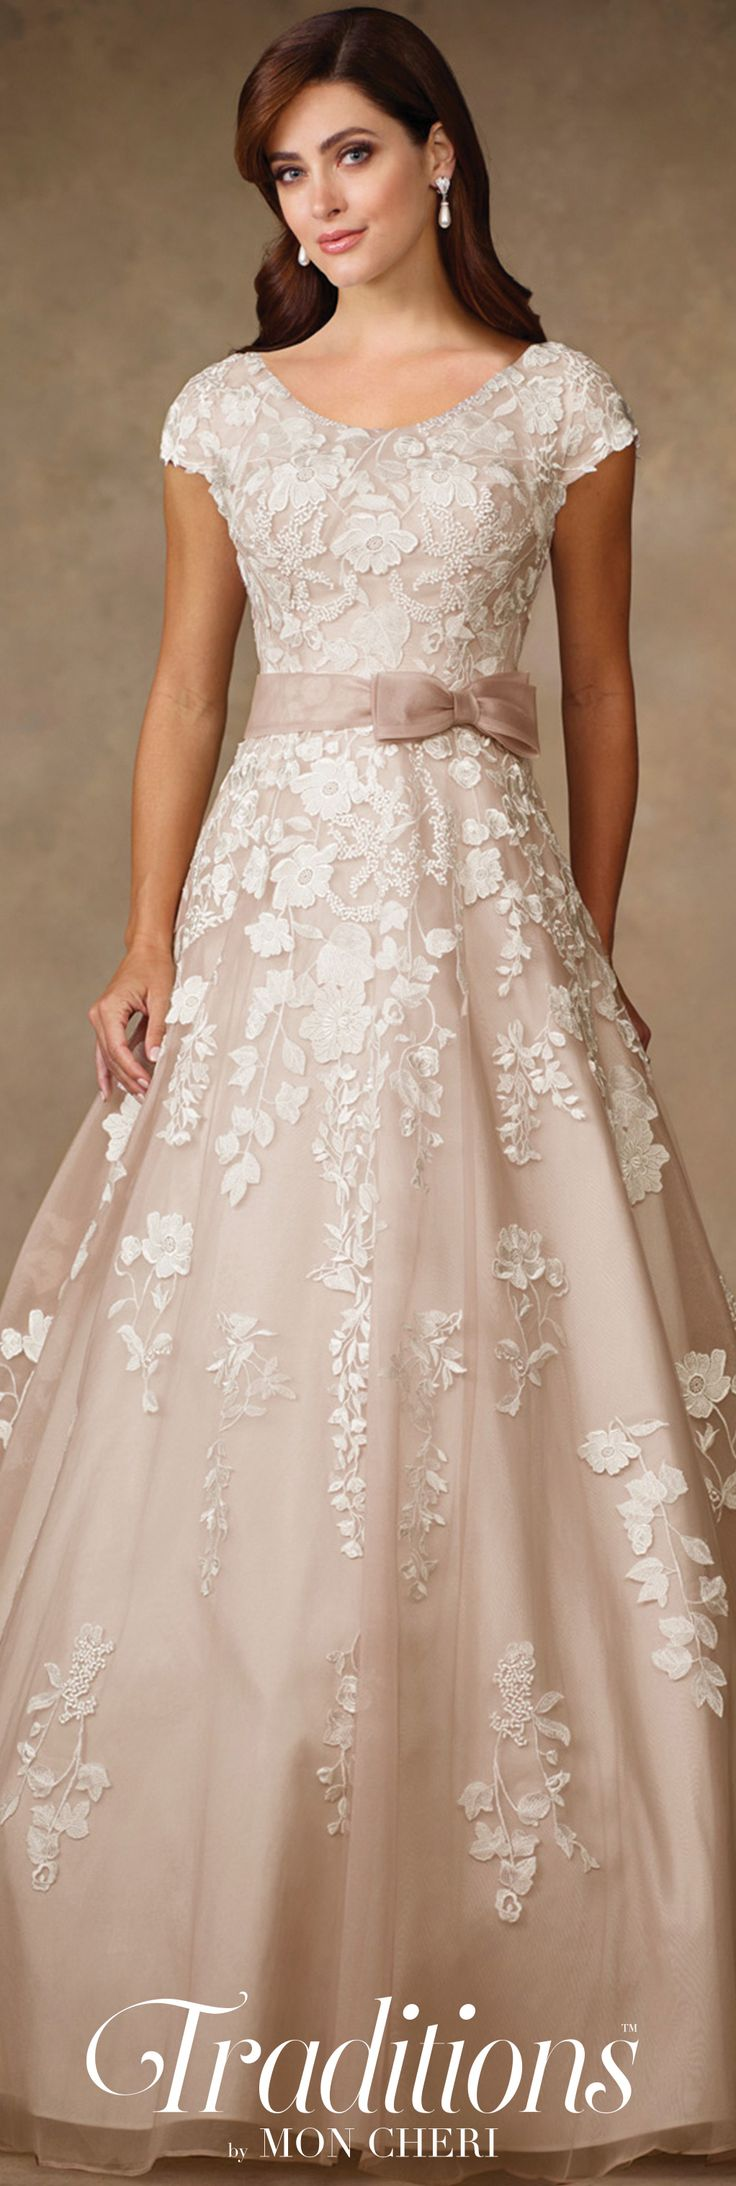 Traditions by Mon Cheri Spring 2017 Wedding Gown Collection - Style No. TR11707 - lace cap sleeve wedding dress in Tea Rose/Ivory